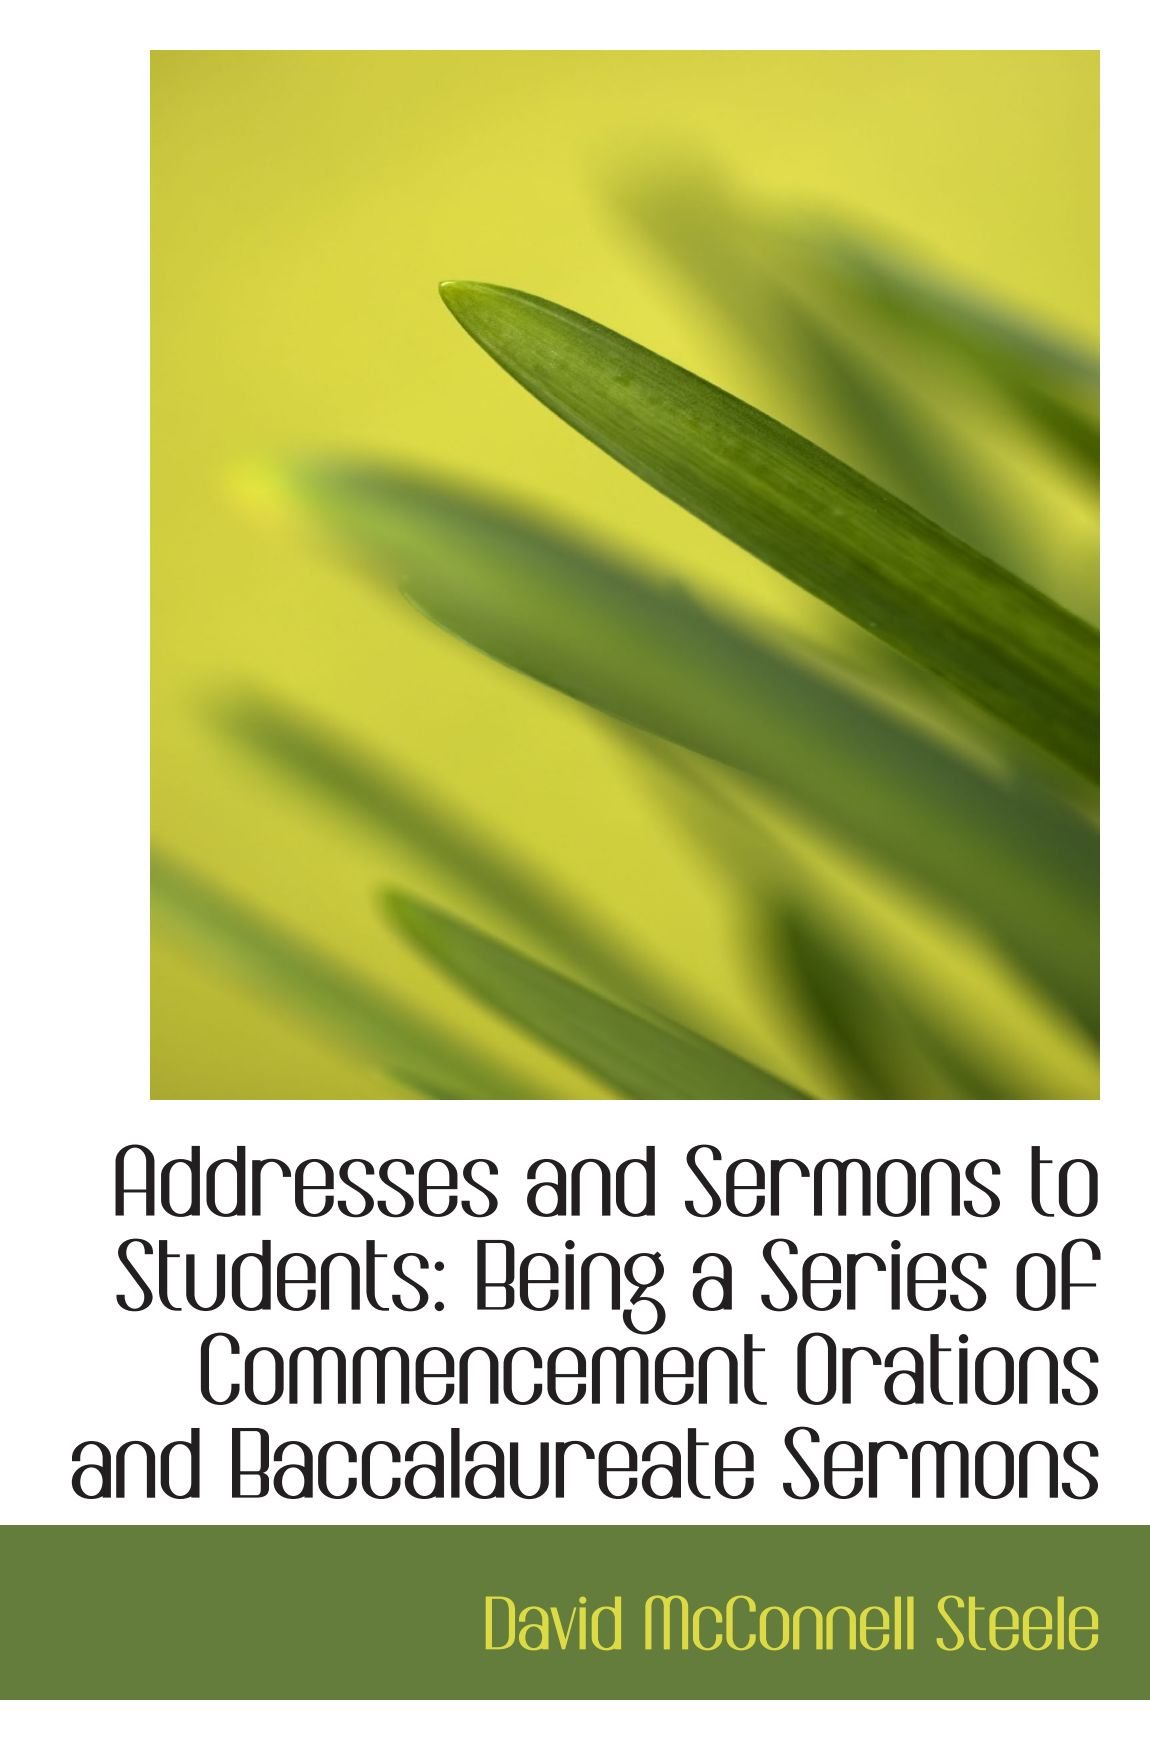 Addresses and Sermons to Students: Being a Series of